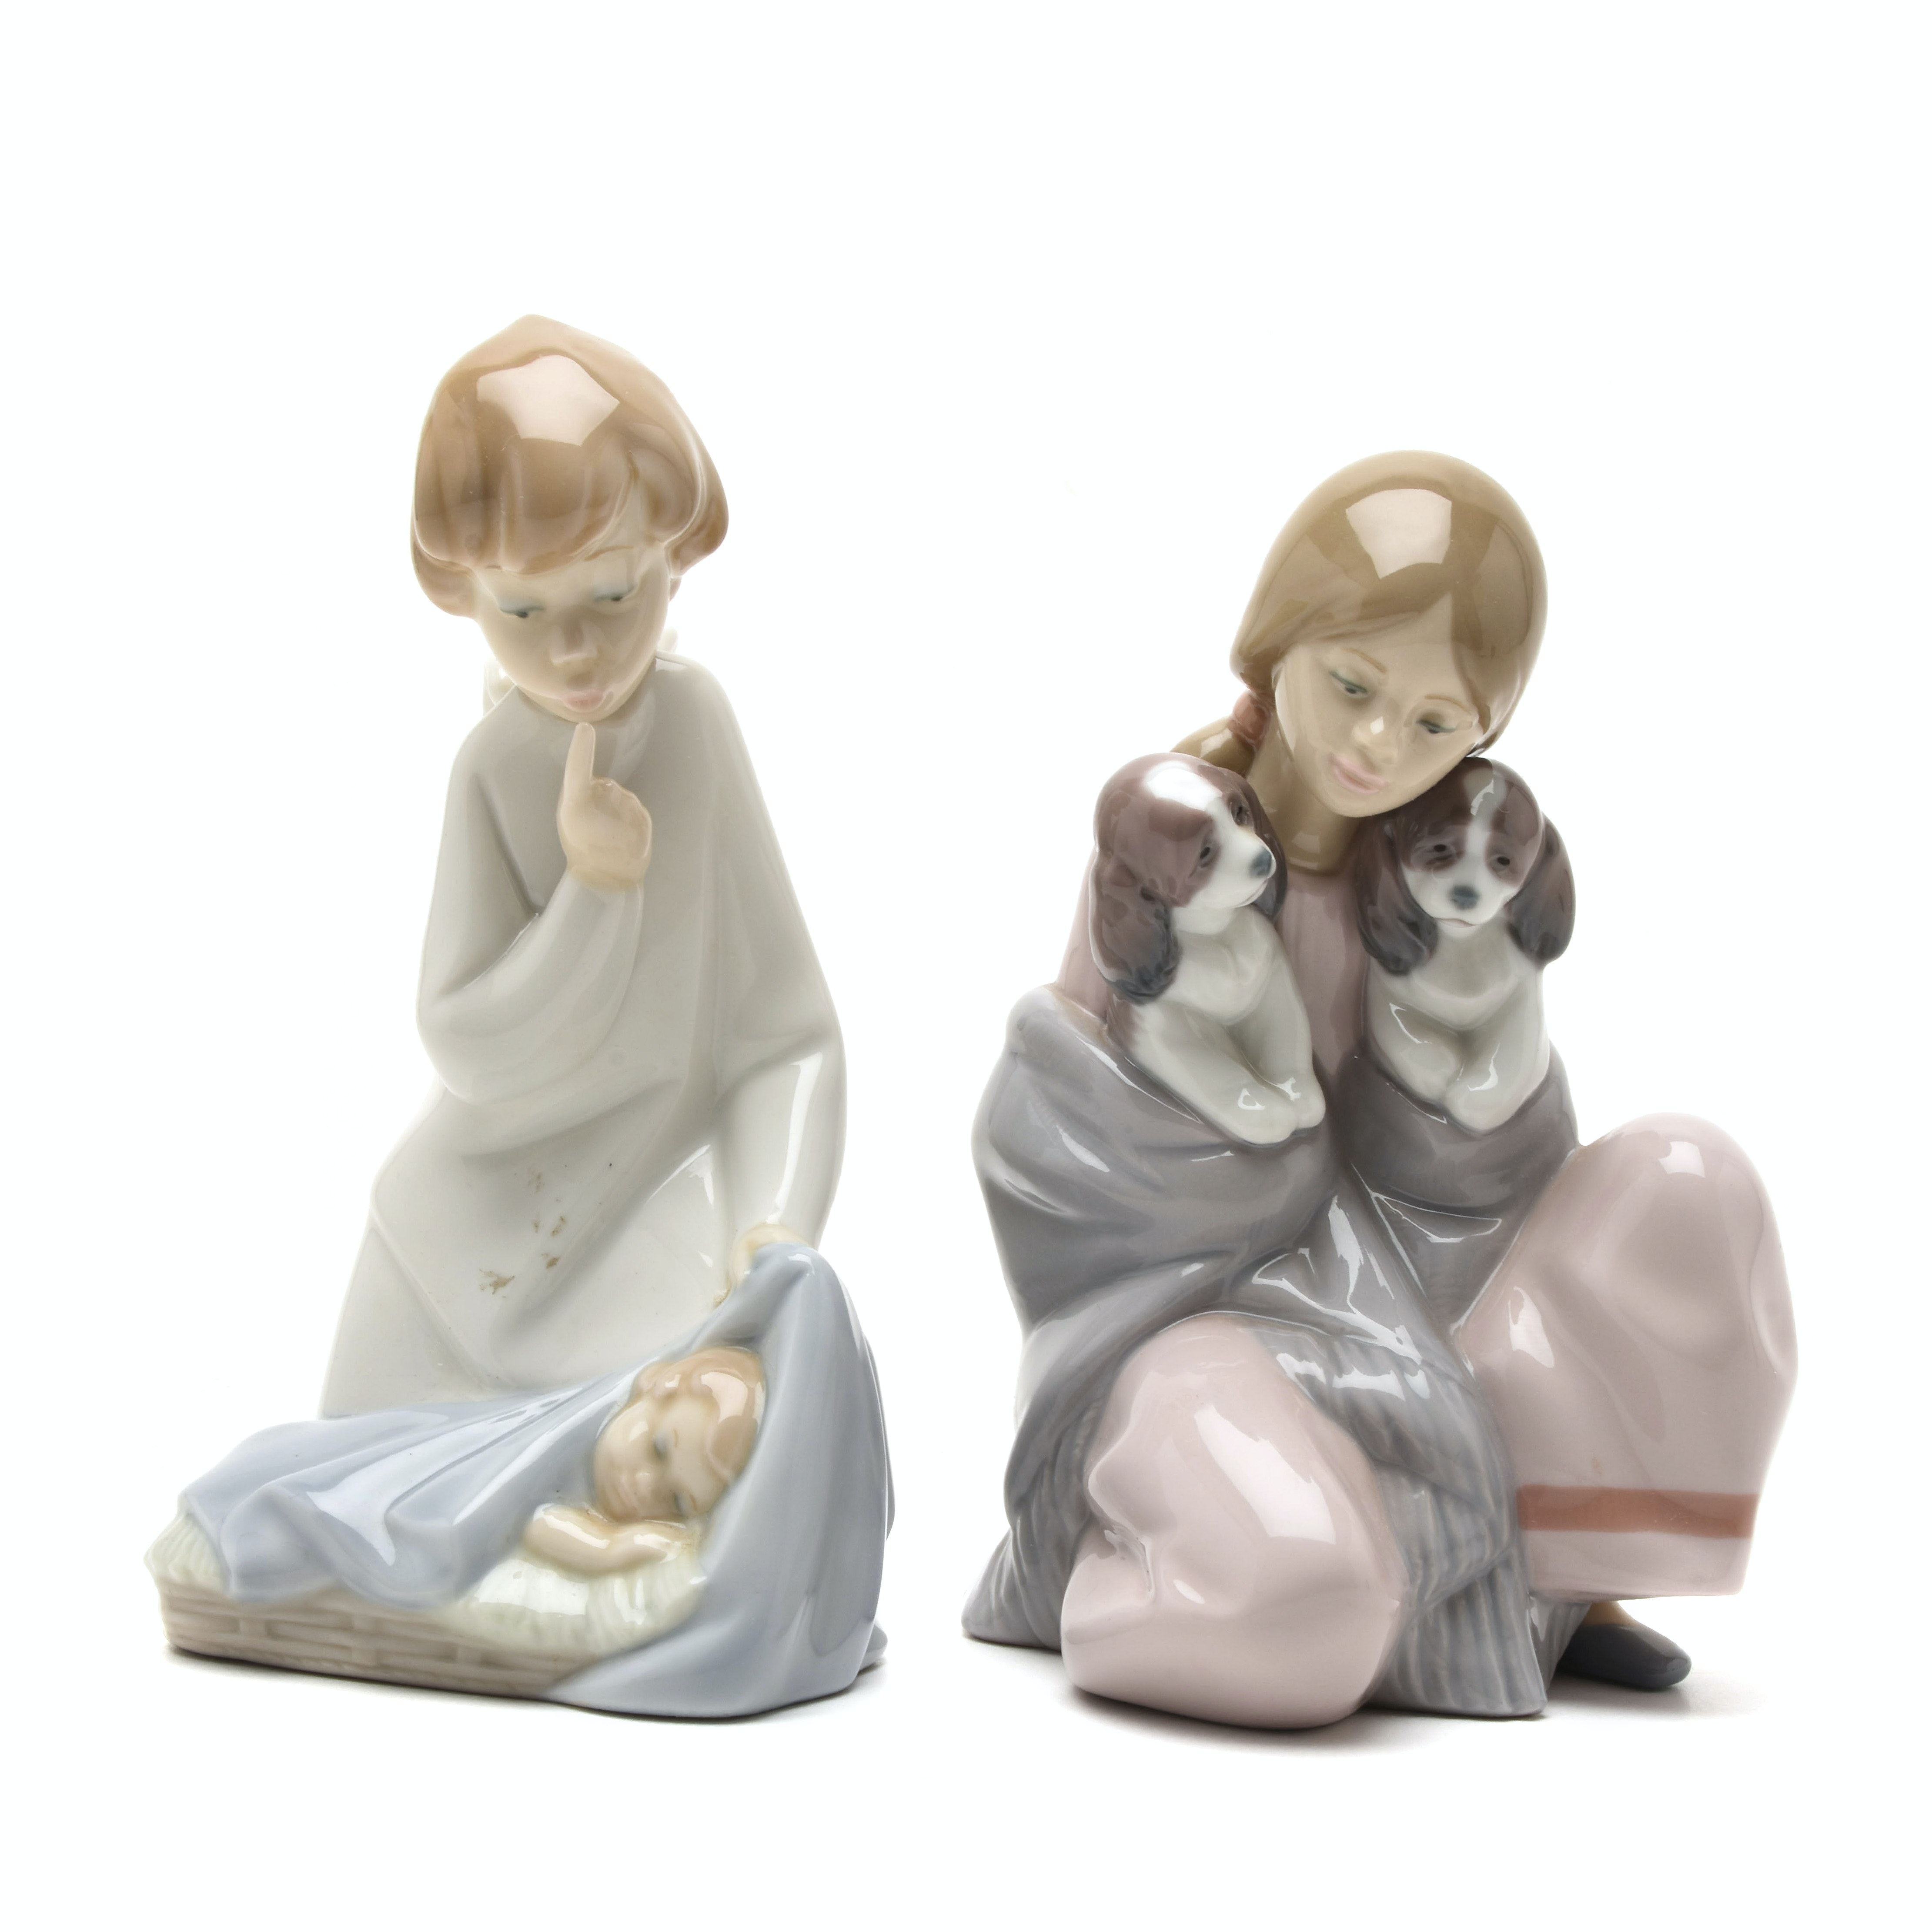 """Lladró Porcelain Angel and Baby and """"Snuggle Up"""" #6226 Figurines"""